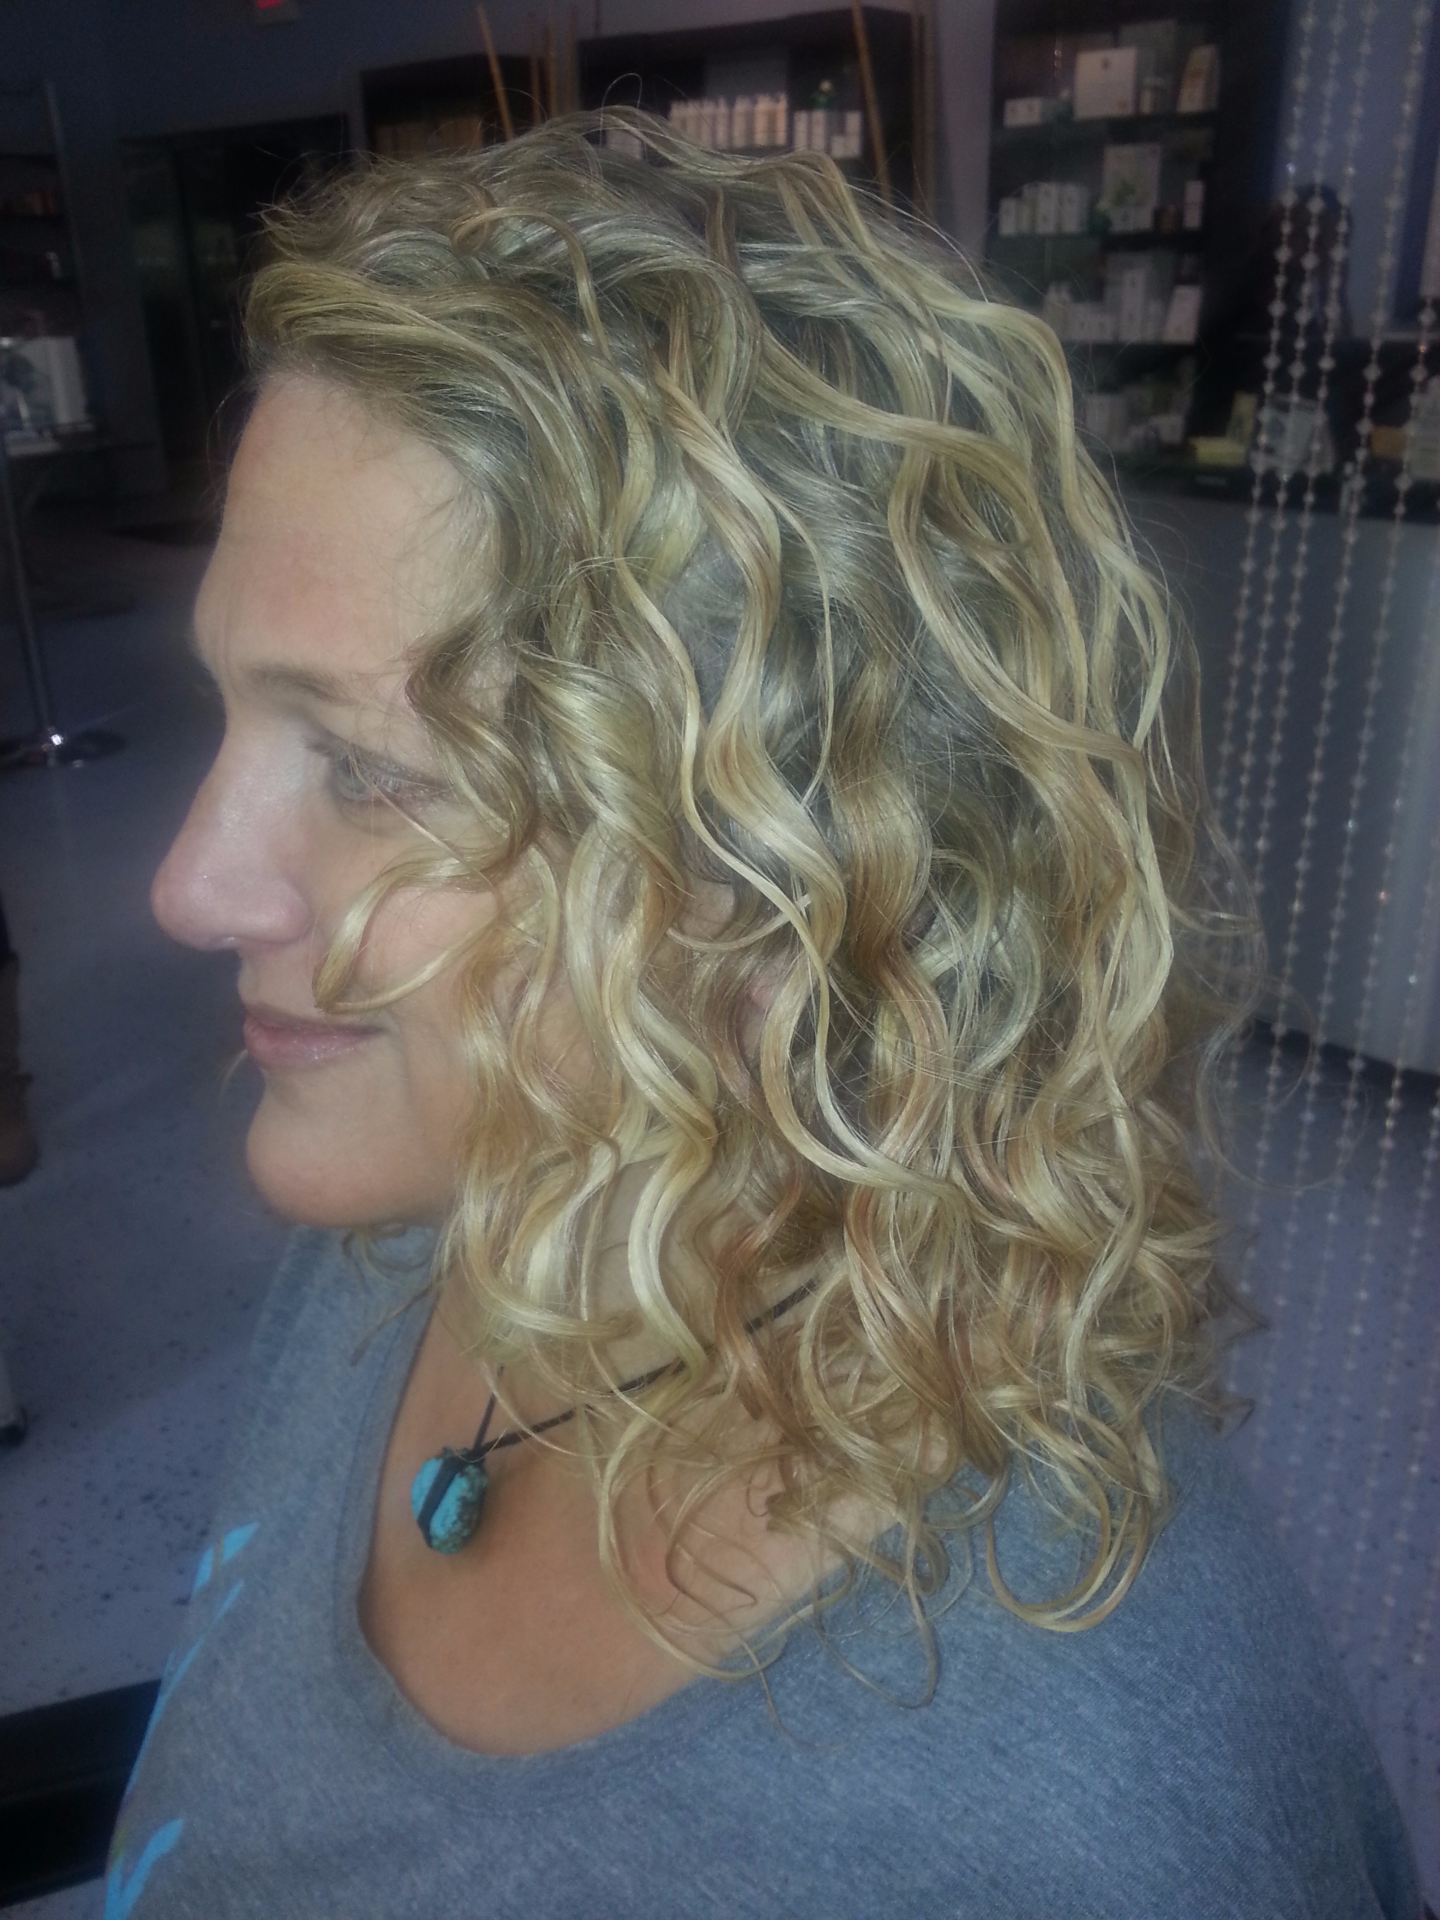 Curly blonde balayage